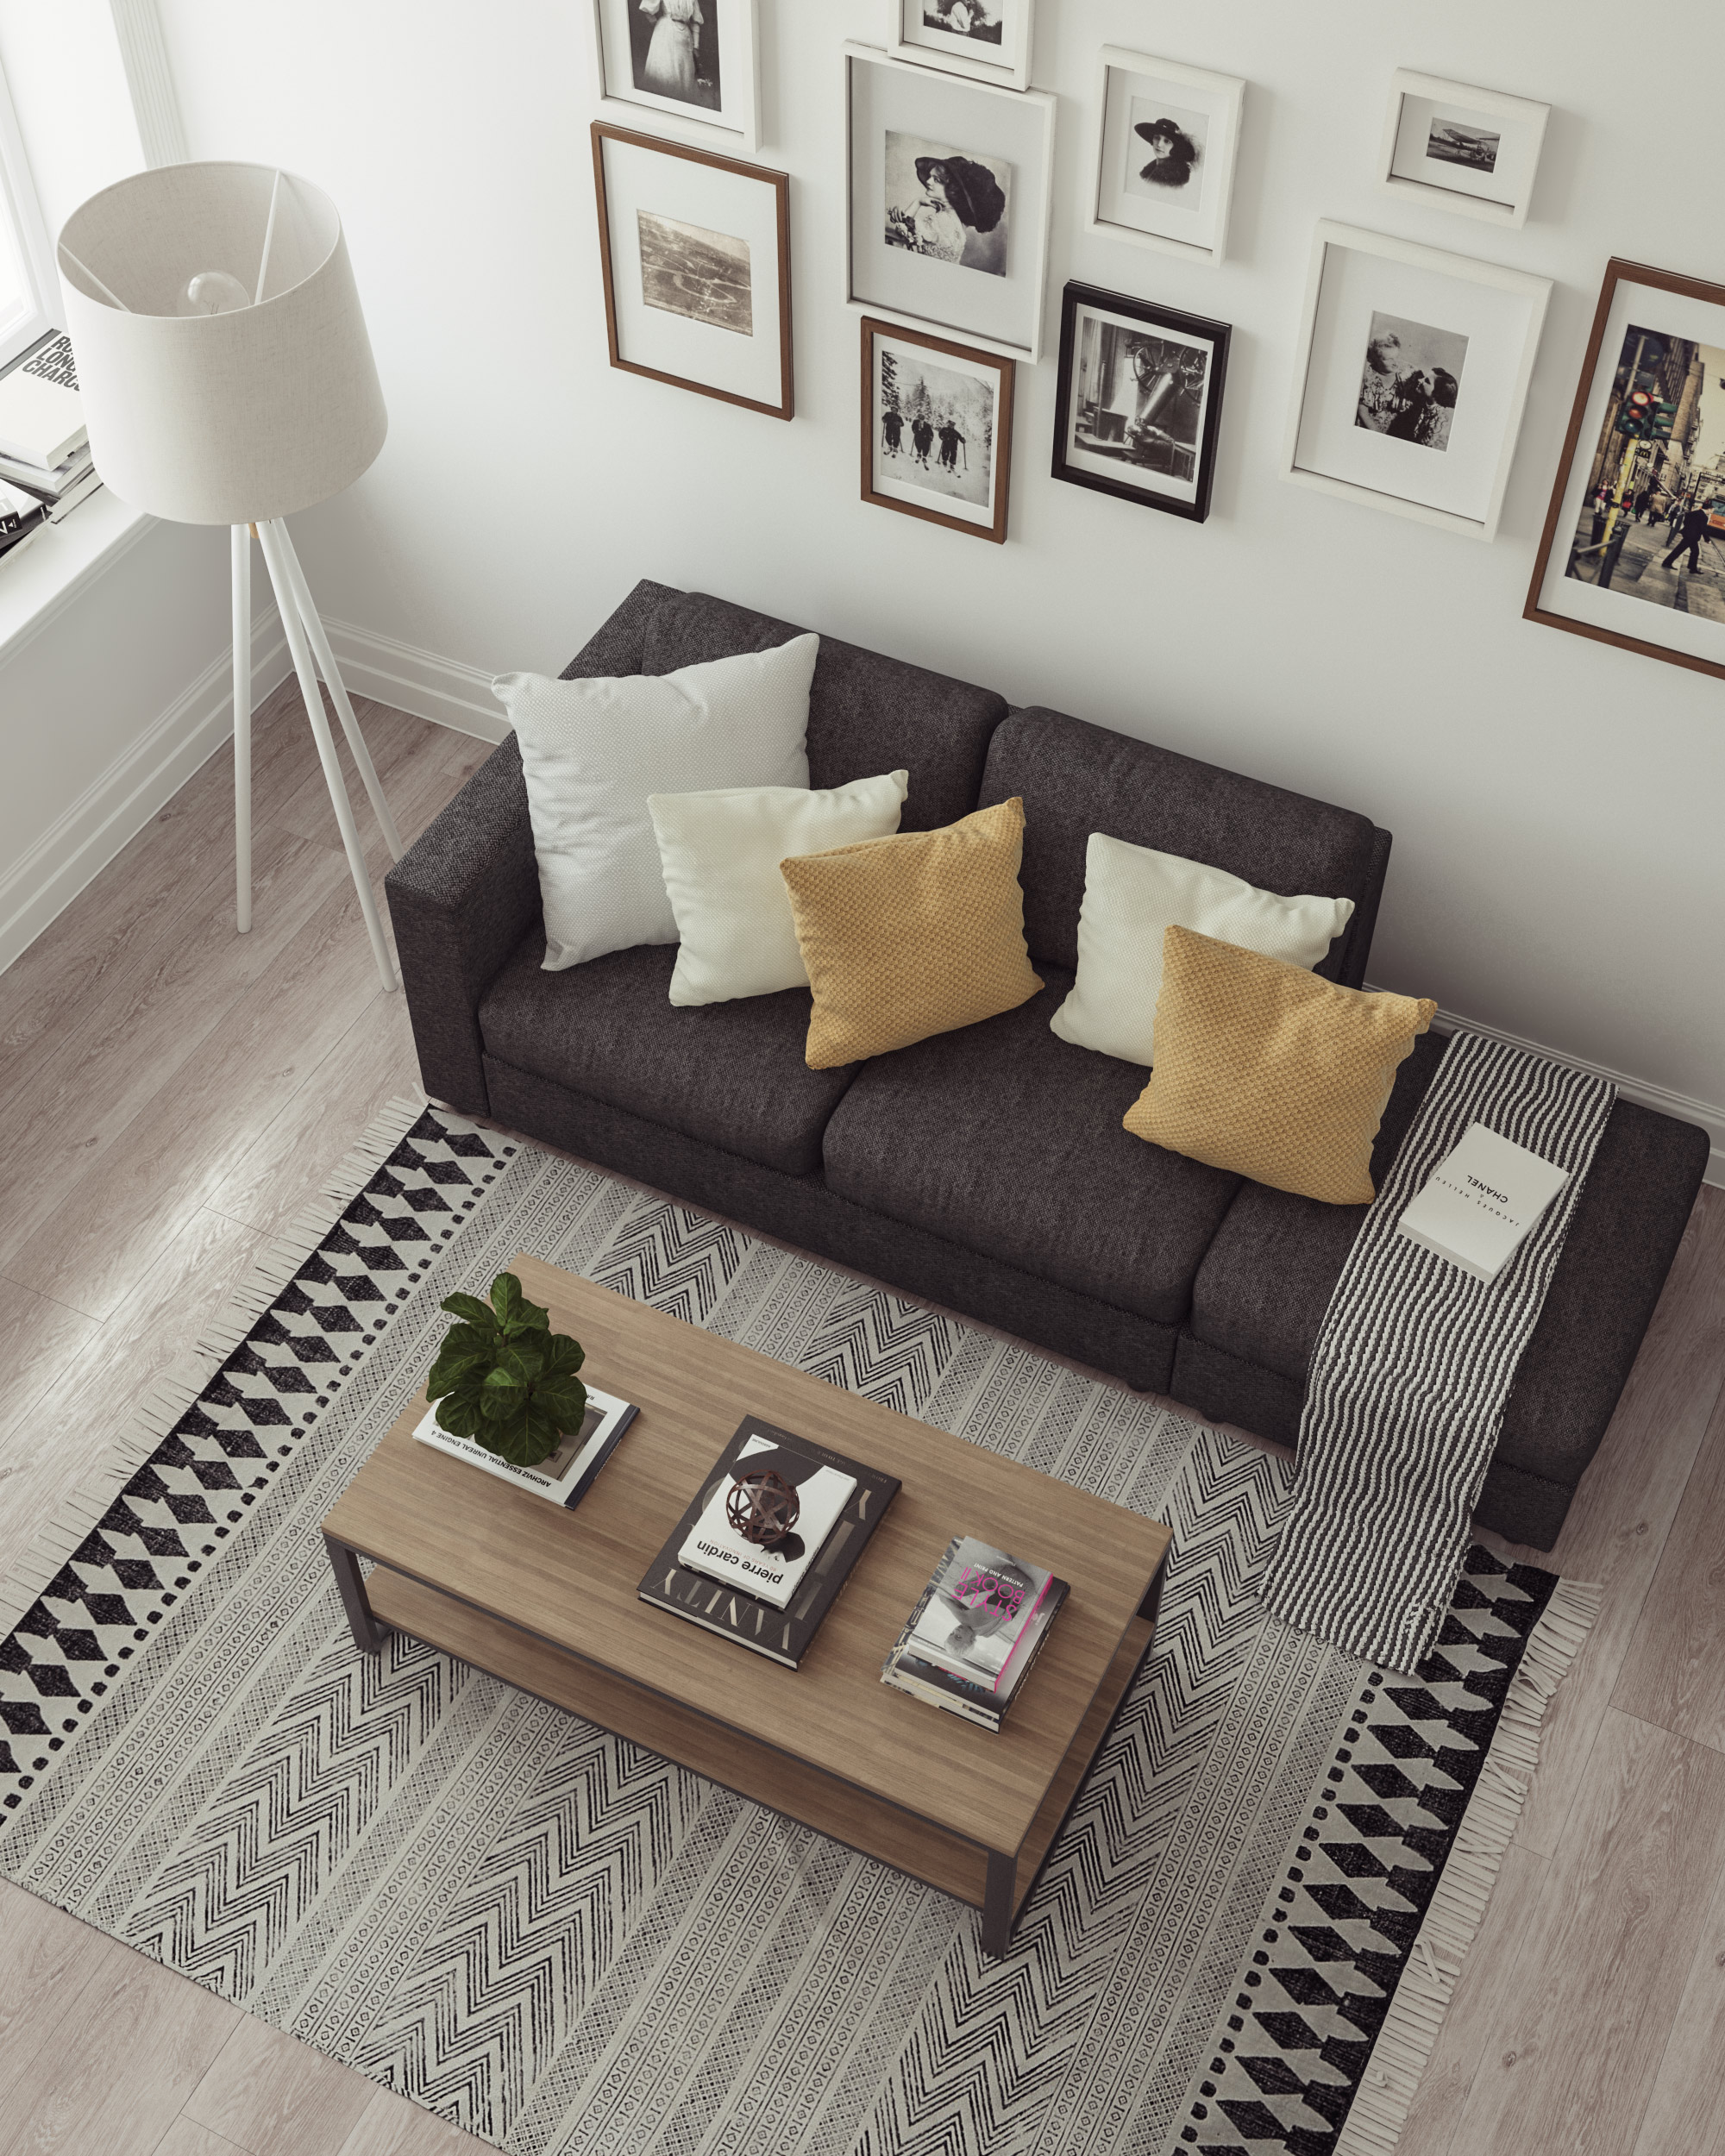 3dsmax and V-Ray, sofa modeled by © Pasquale Scionti